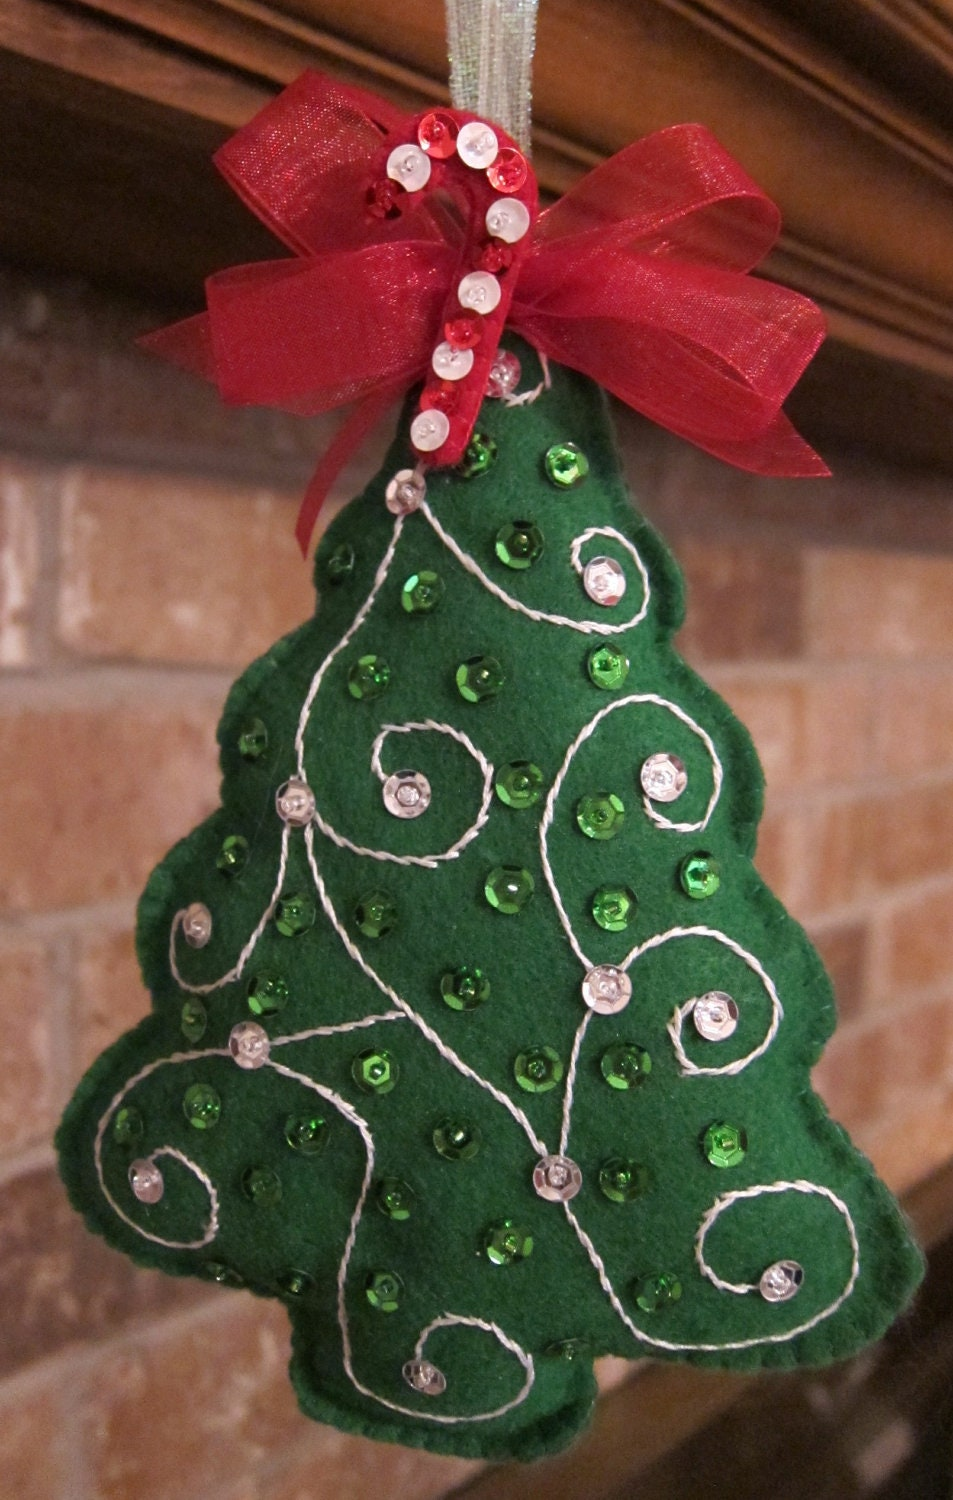 handmade felt christmas tree ornament by beauxtails on etsy. Black Bedroom Furniture Sets. Home Design Ideas